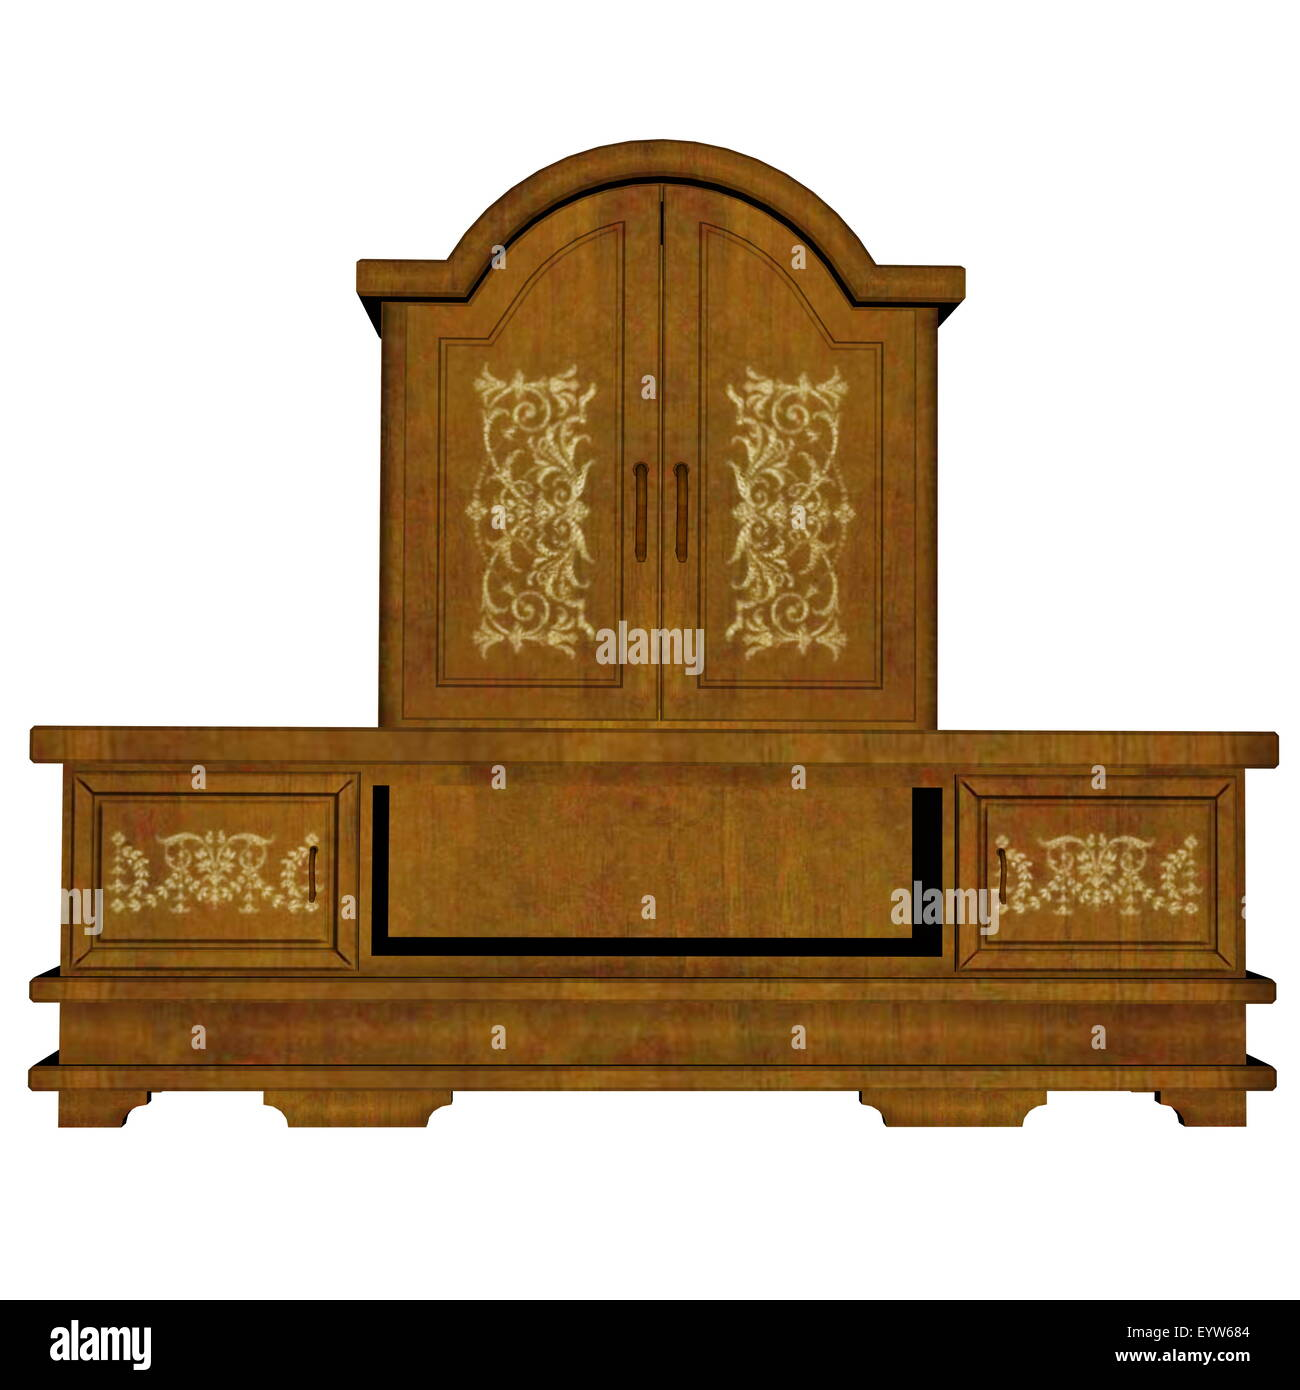 Cabinet furniture isolated in white background - 3D render - Stock Image